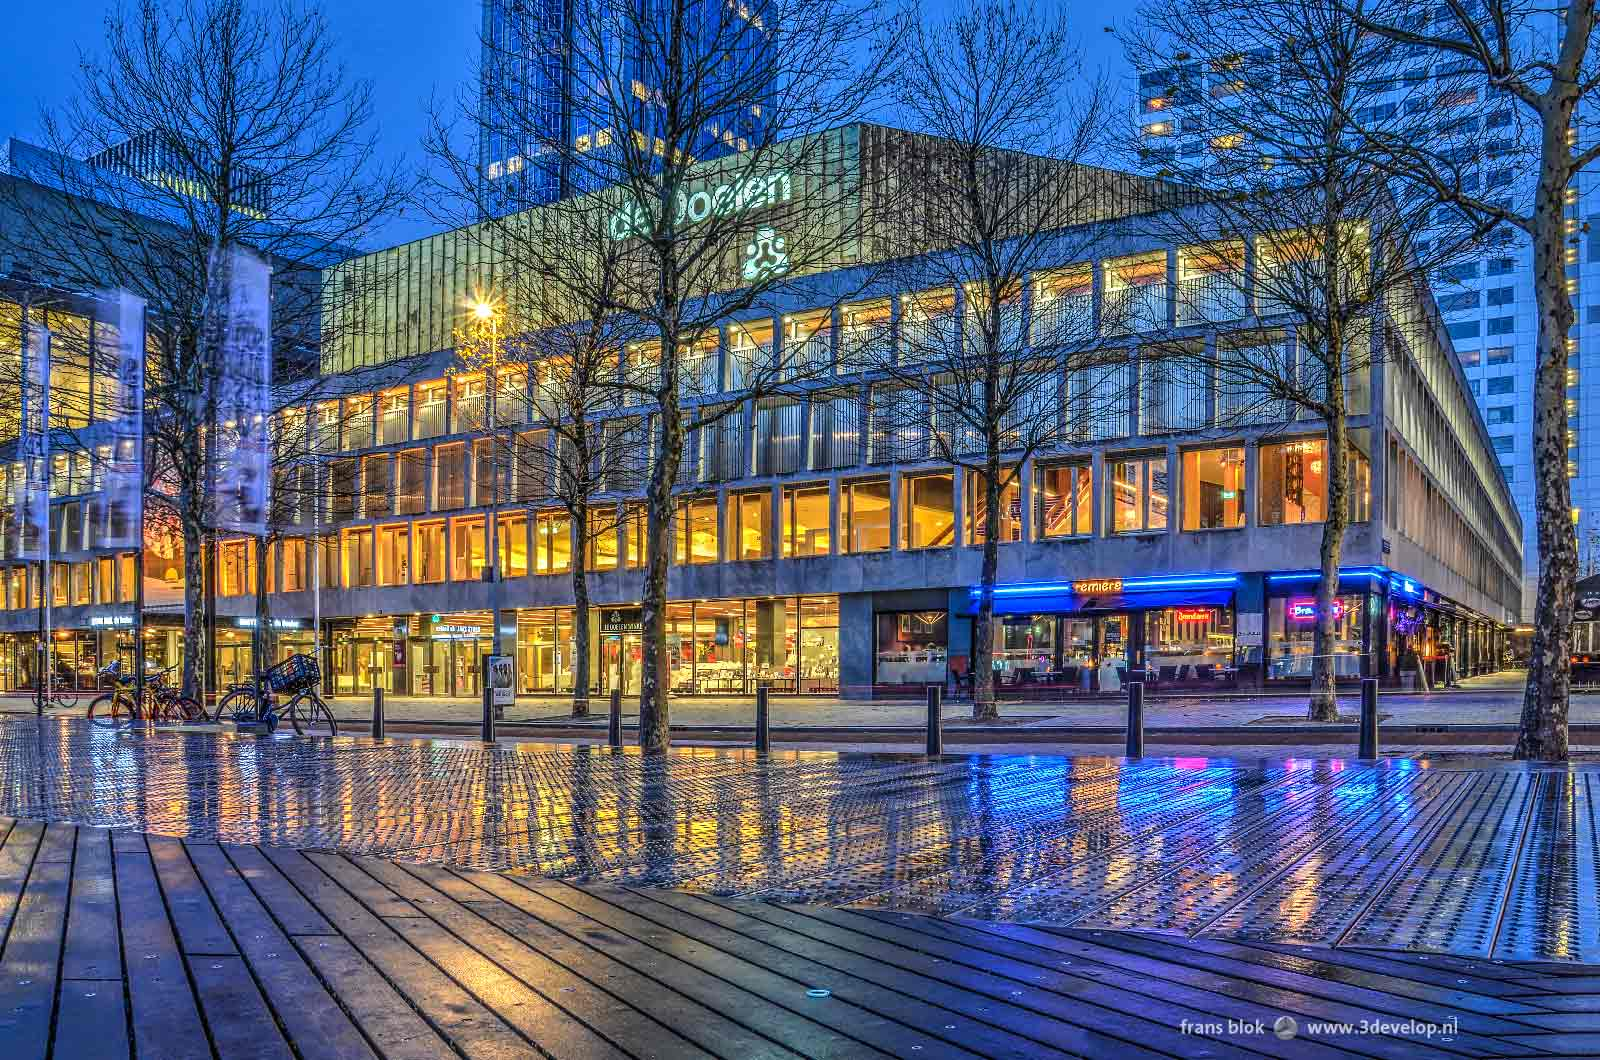 Evening image of concert and congress hall De Doelen in Rotterdam, reflecting in the wet steel and wood of Schouwburgplein